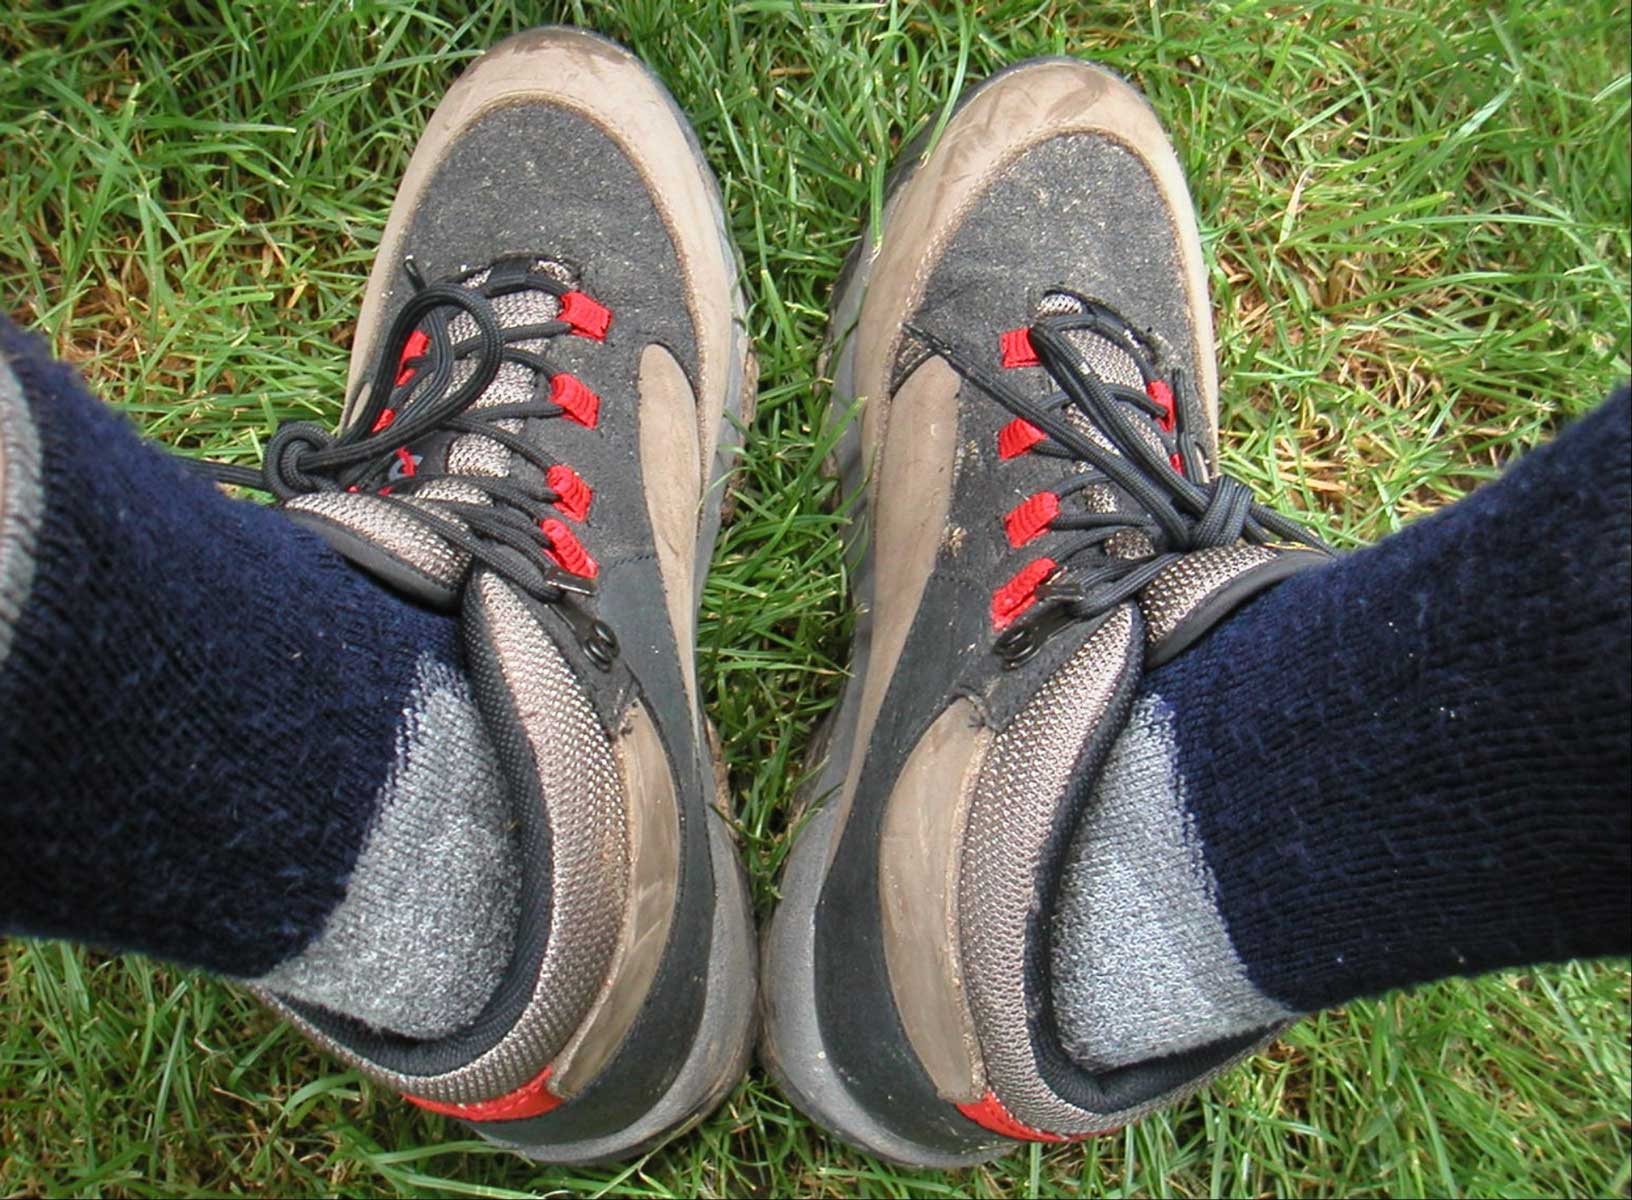 Hiking socks in shoes